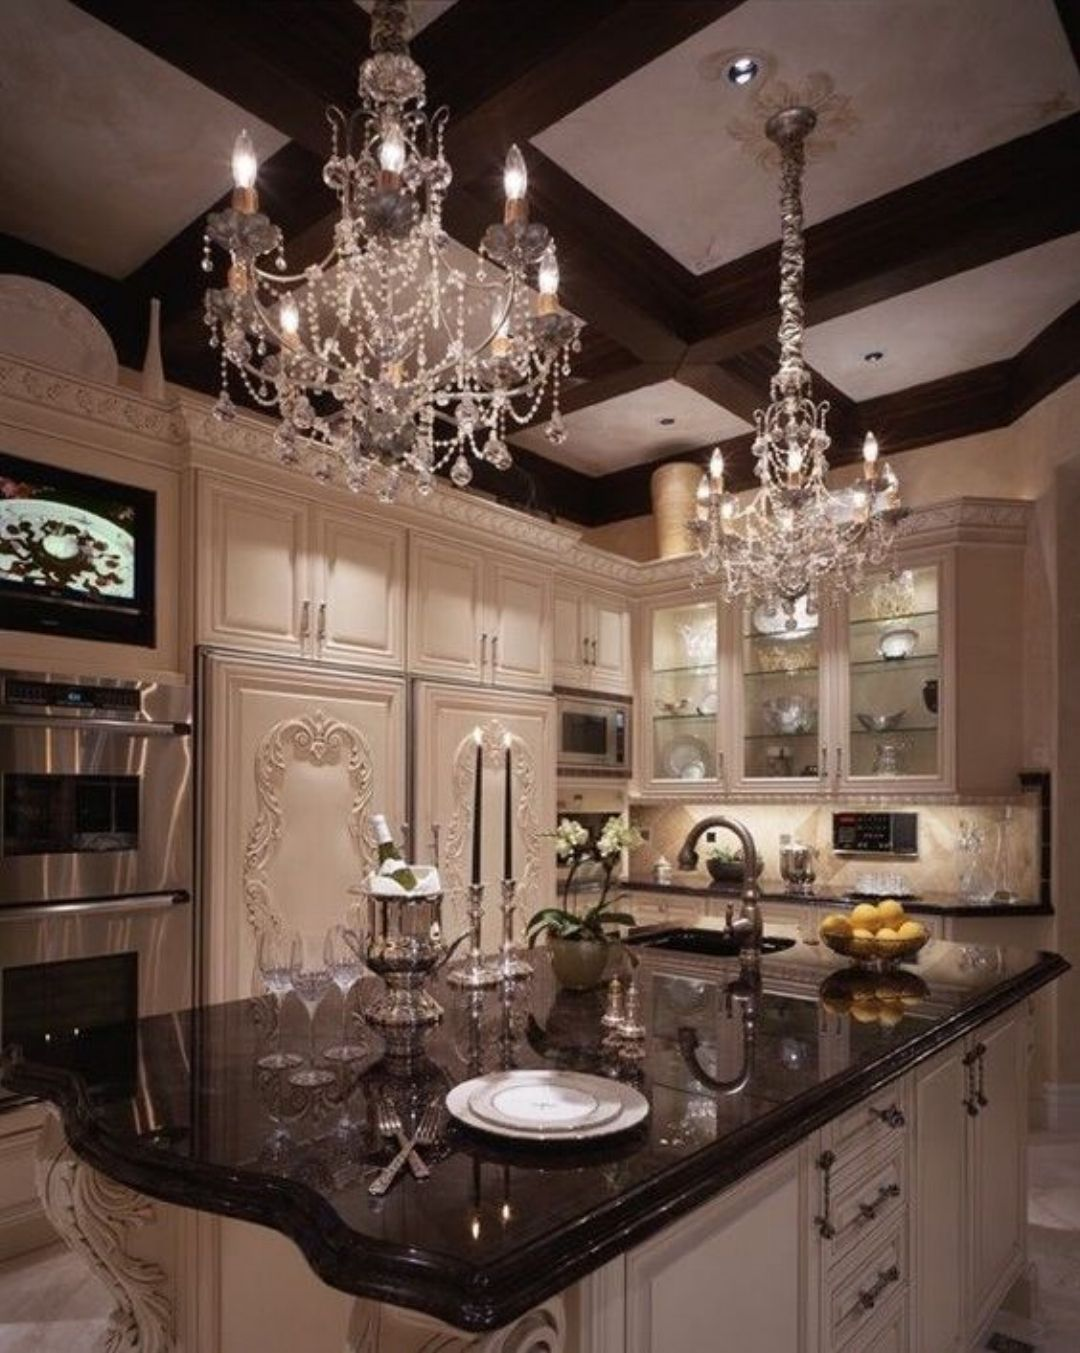 54 exceptional kitchen designs luxury kitchens chandeliers and luxury 54 exceptional kitchen designs mozeypictures Image collections